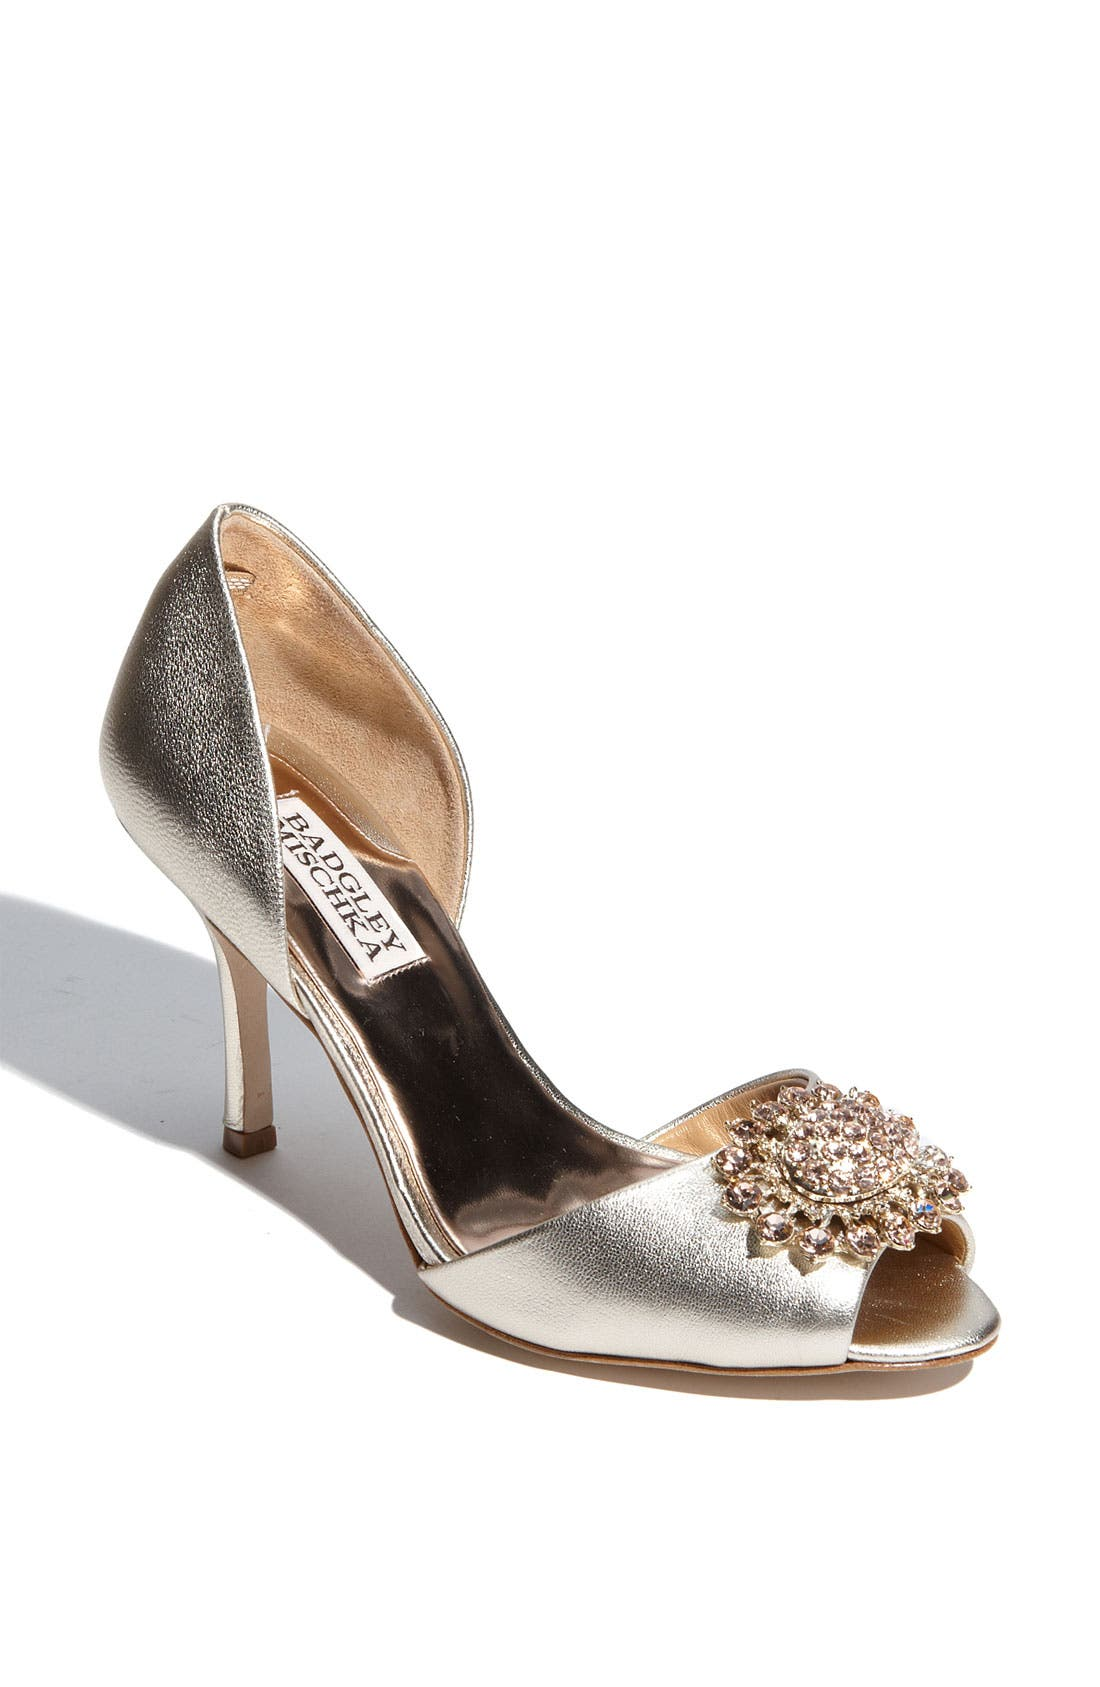 Main Image - Badgley Mischka 'Lacie' Pump